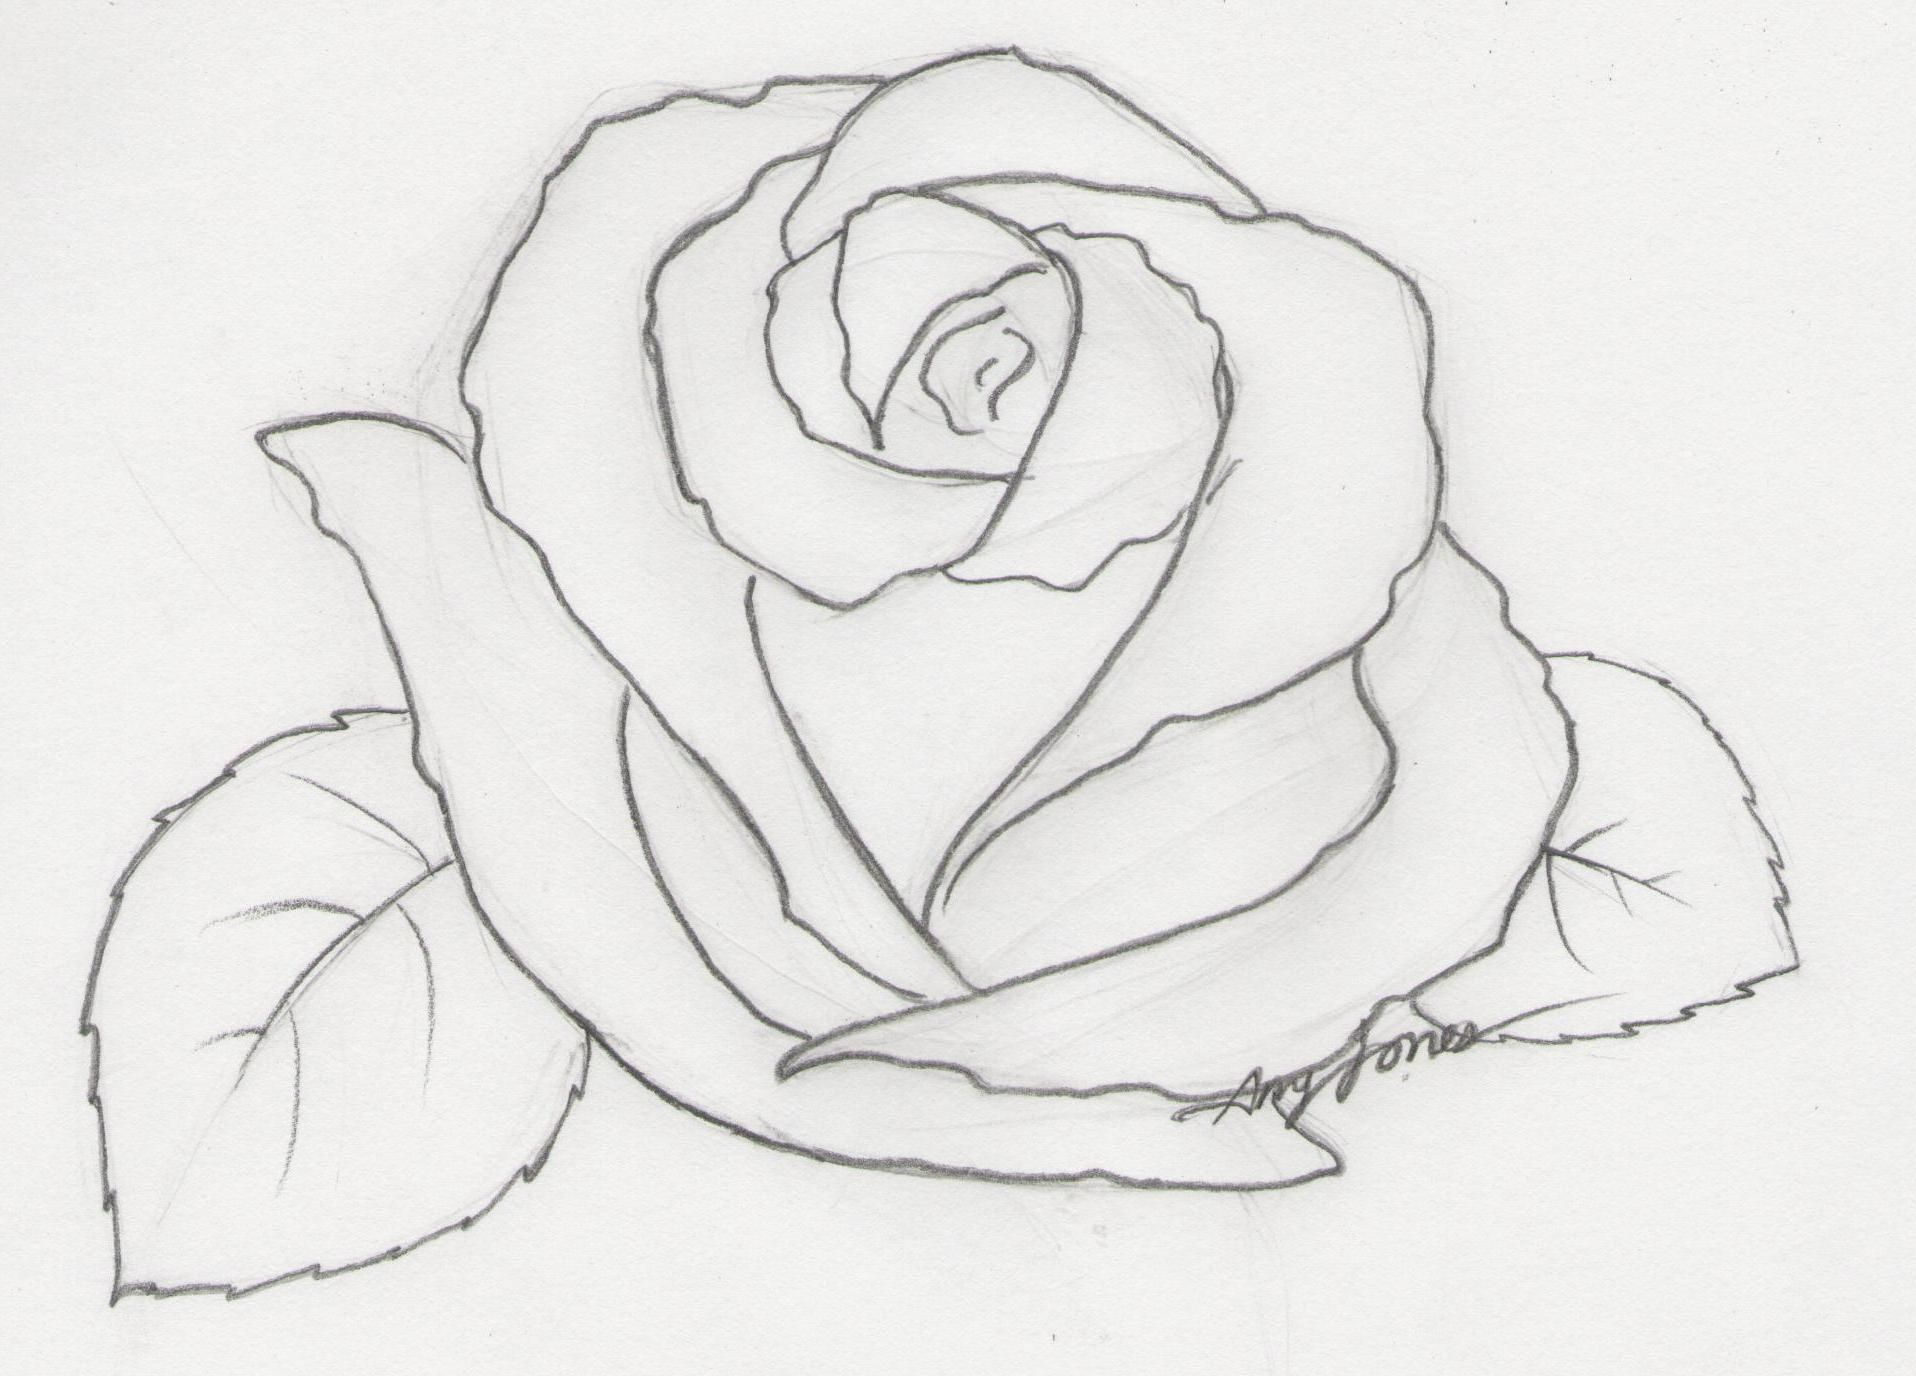 Rose Drawings Rose Pencil By Amourdefraise Traditional Art Drawings Other 2010 2013 Flower Drawing Pencil Drawings Easy Flower Sketches